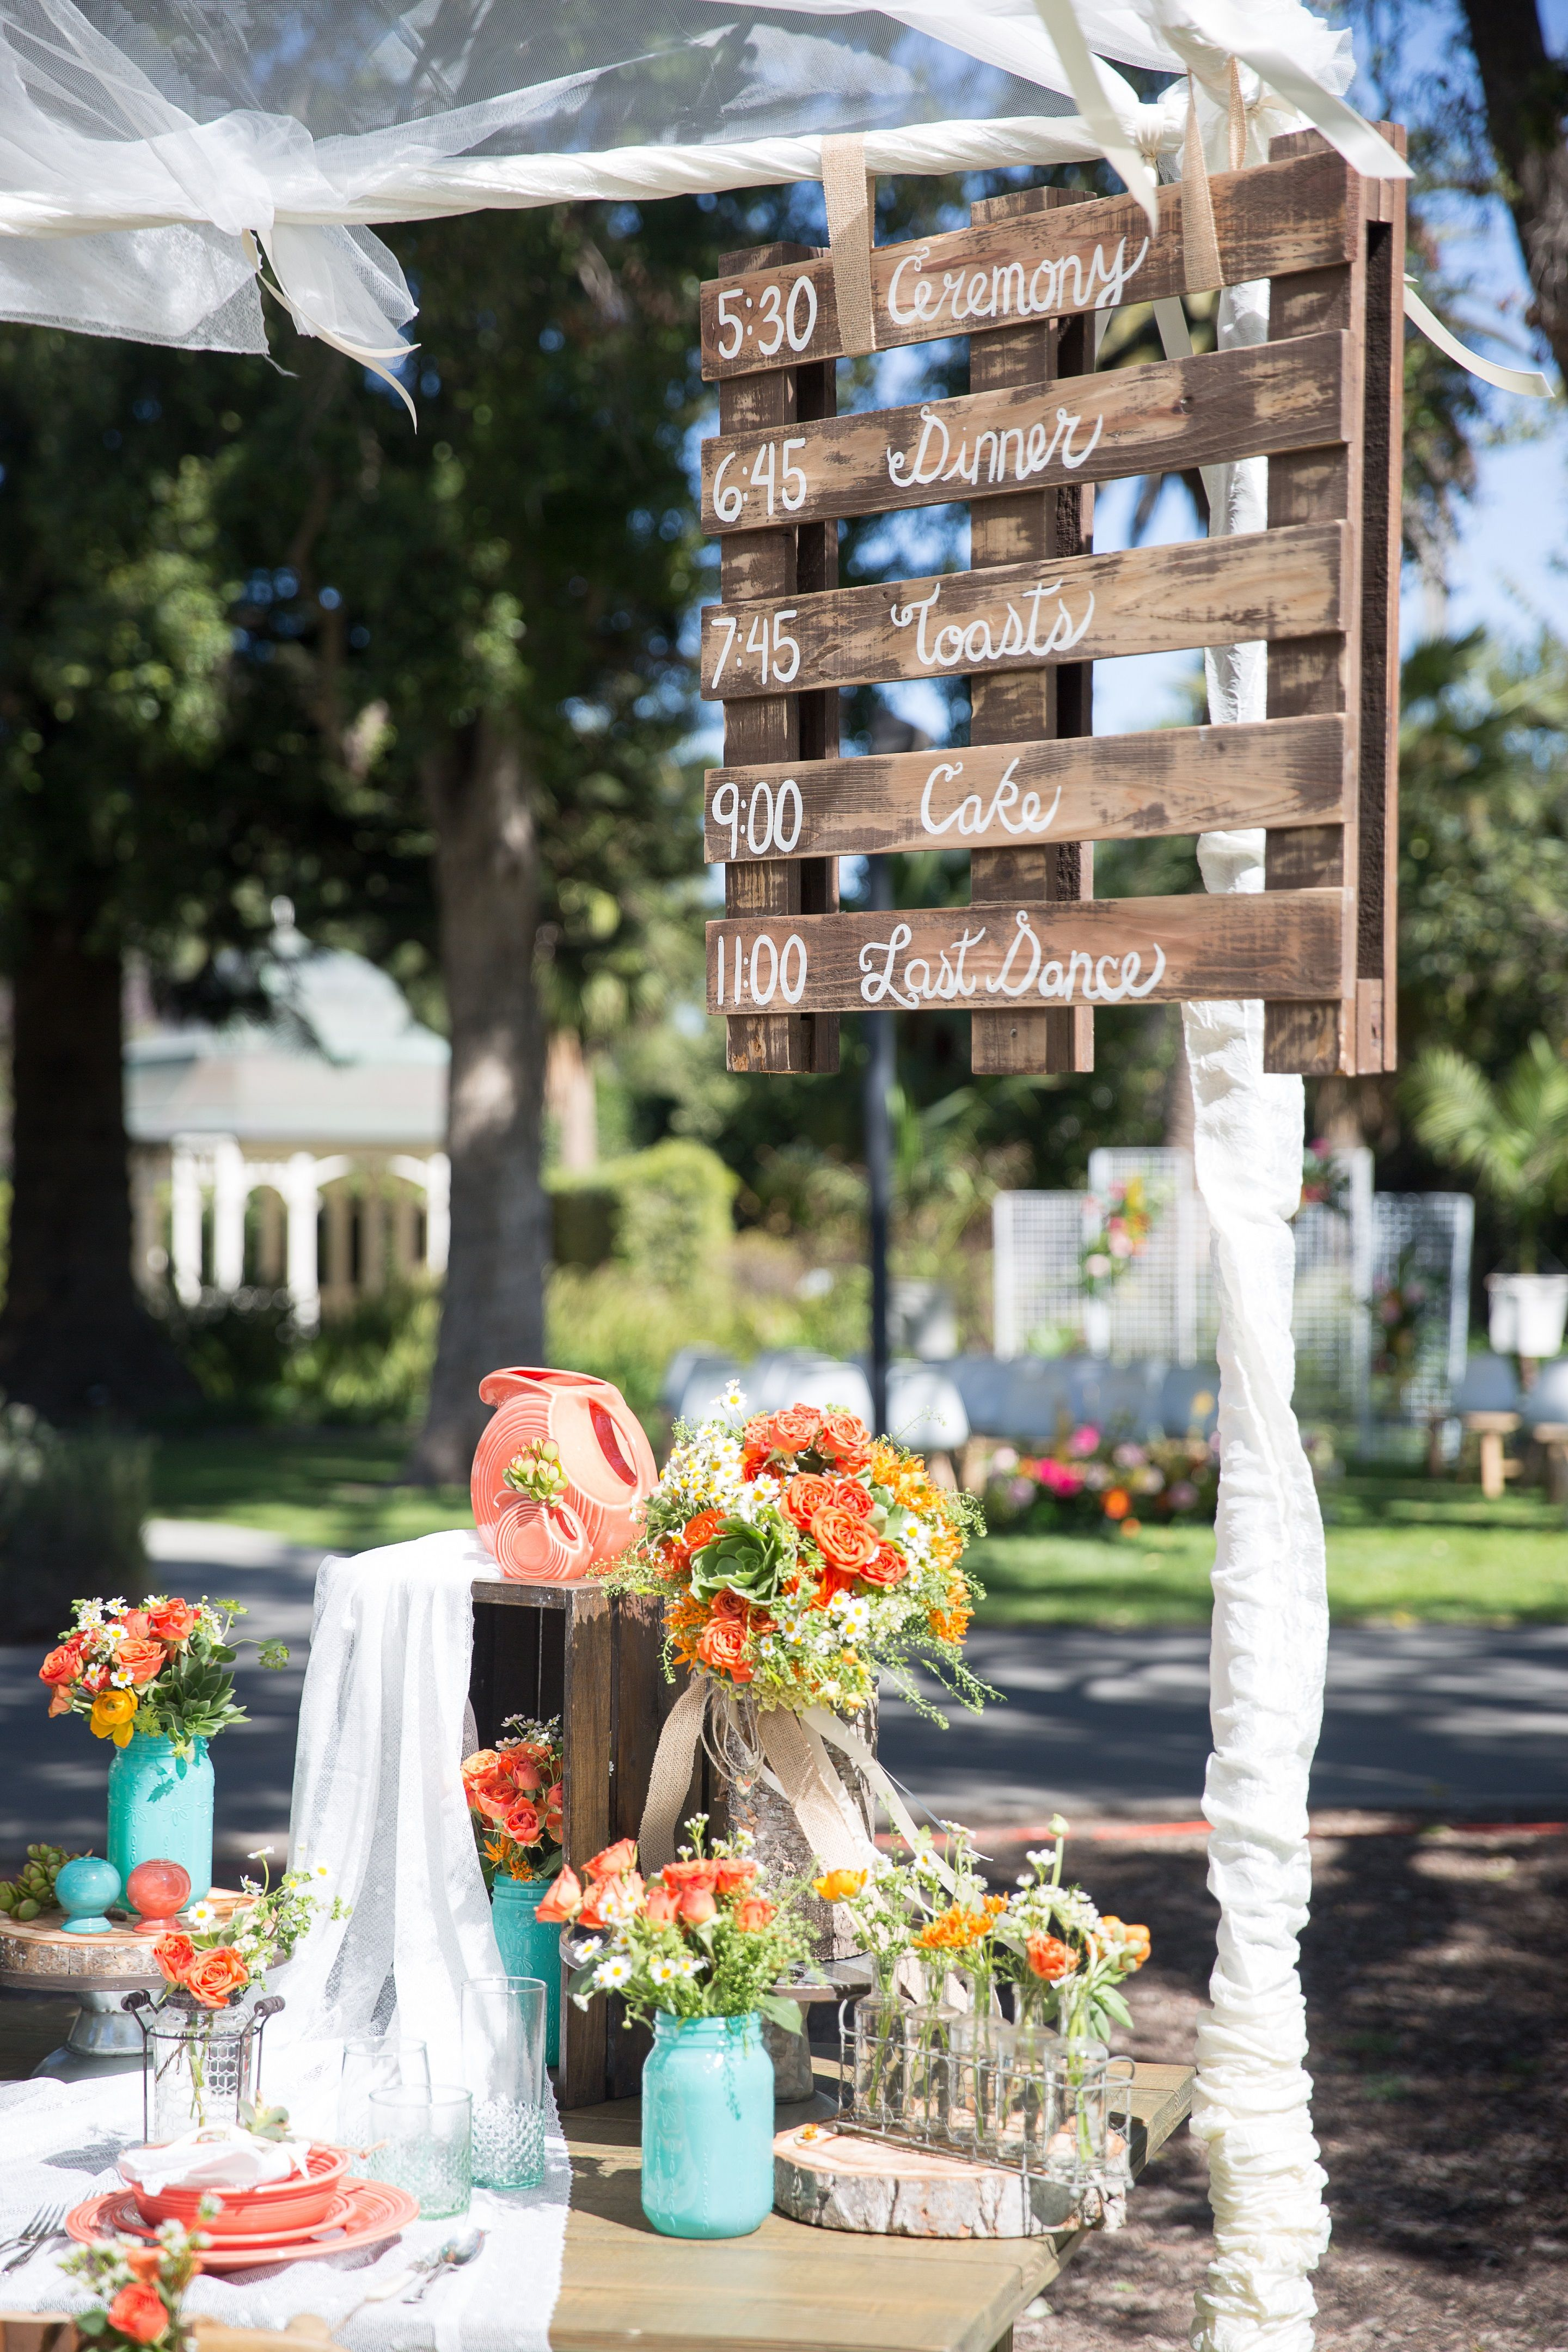 Rustic Rentals L A was featured in Event Planner Pat Frey Designs